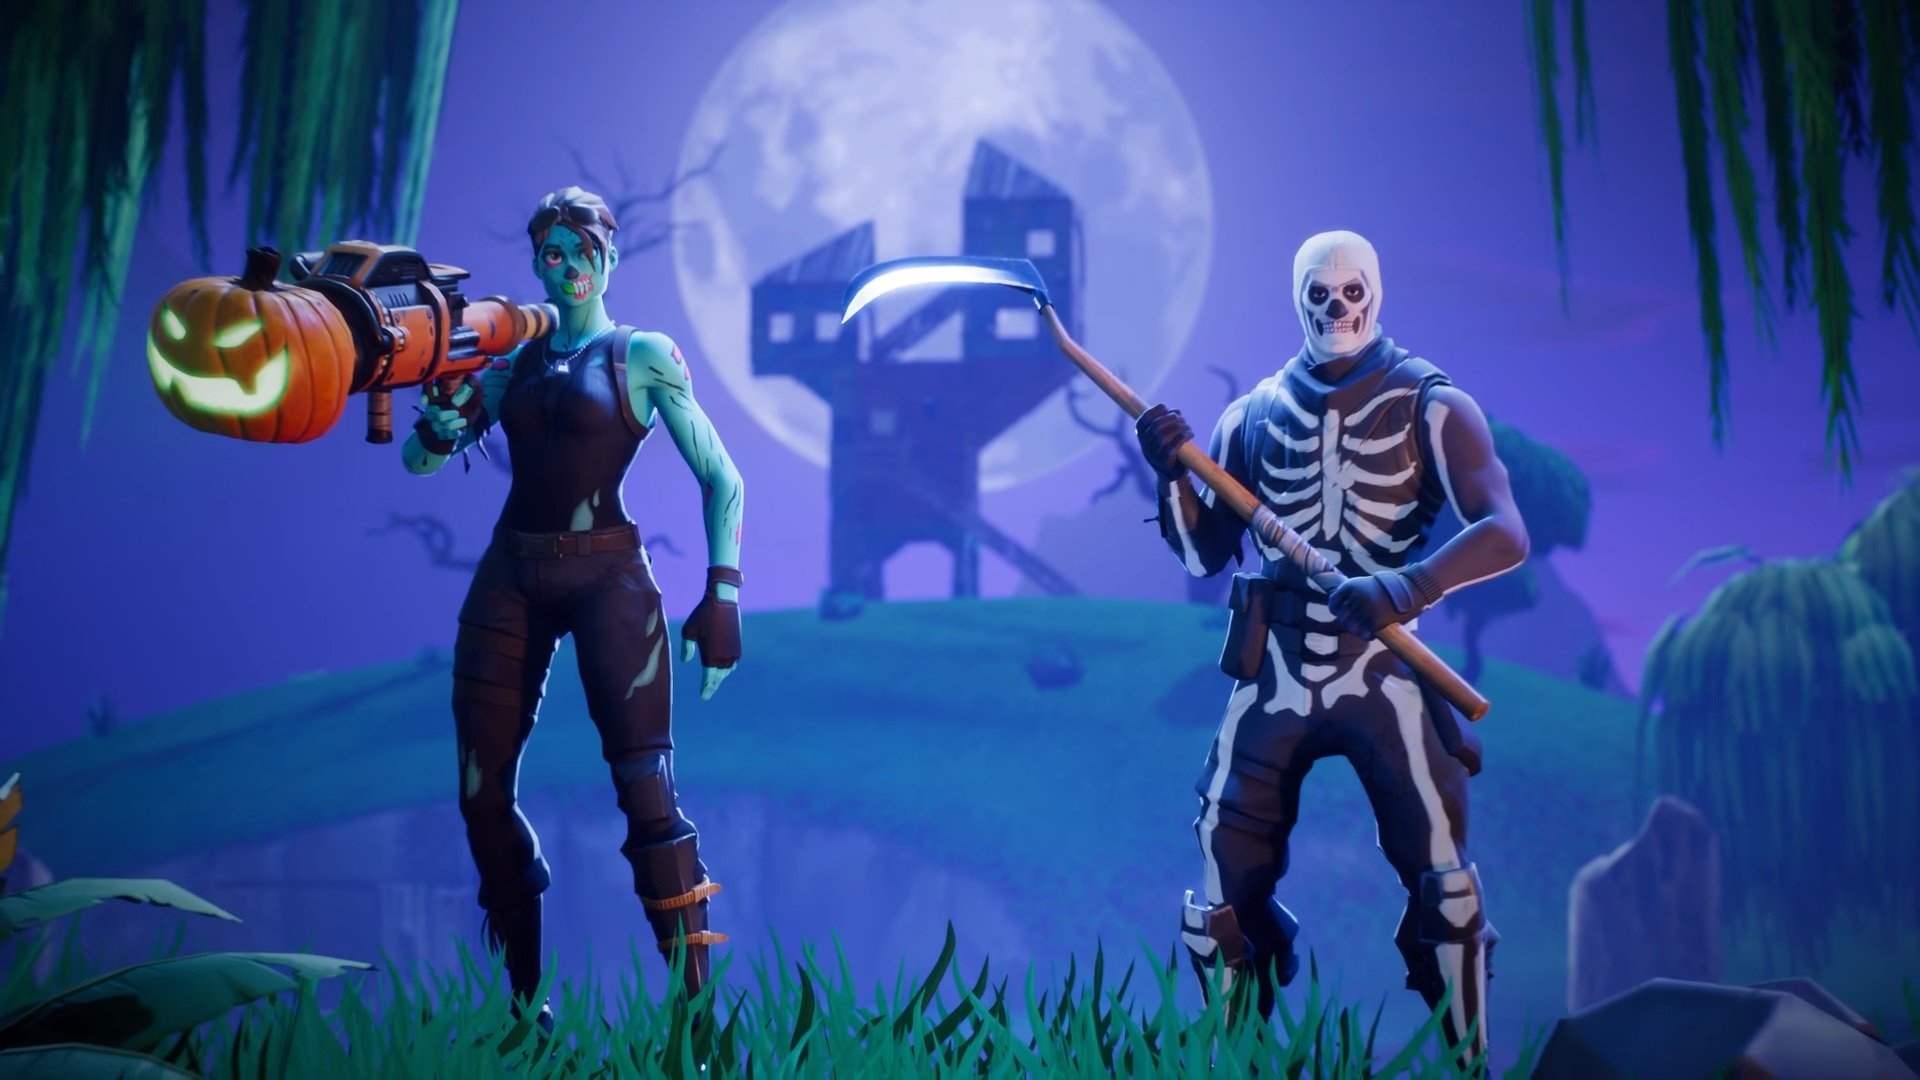 Fortnite Halloween Costumes 2019.Spirit Halloween And Spencer S To Sell Fortnite Costumes